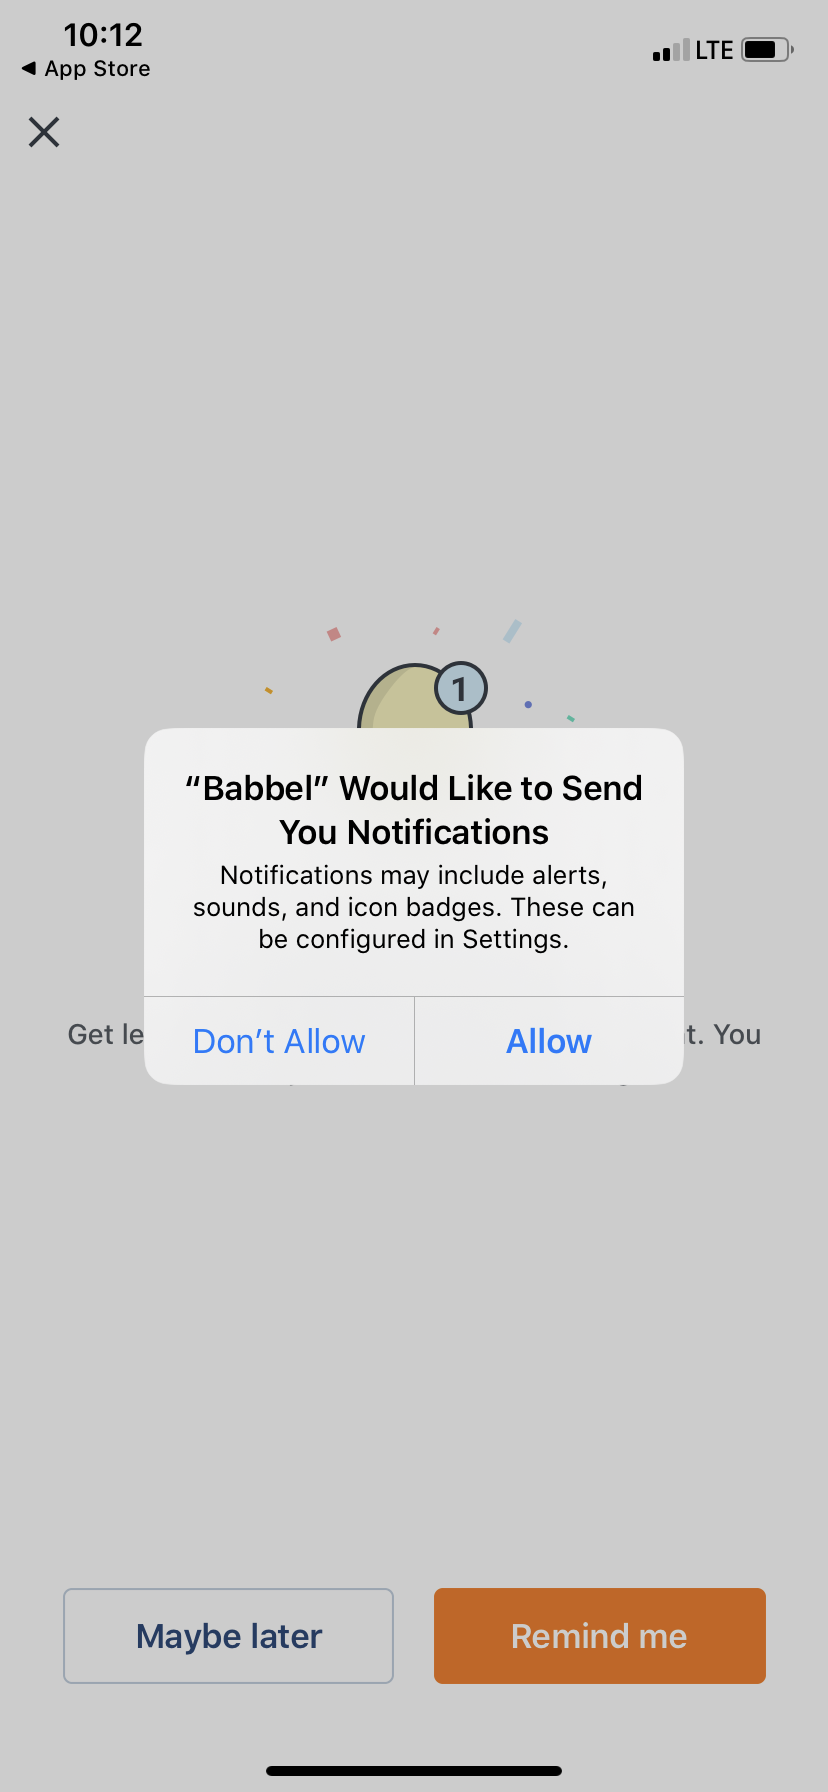 babbel app user onboarding mobile permission priming push notification example